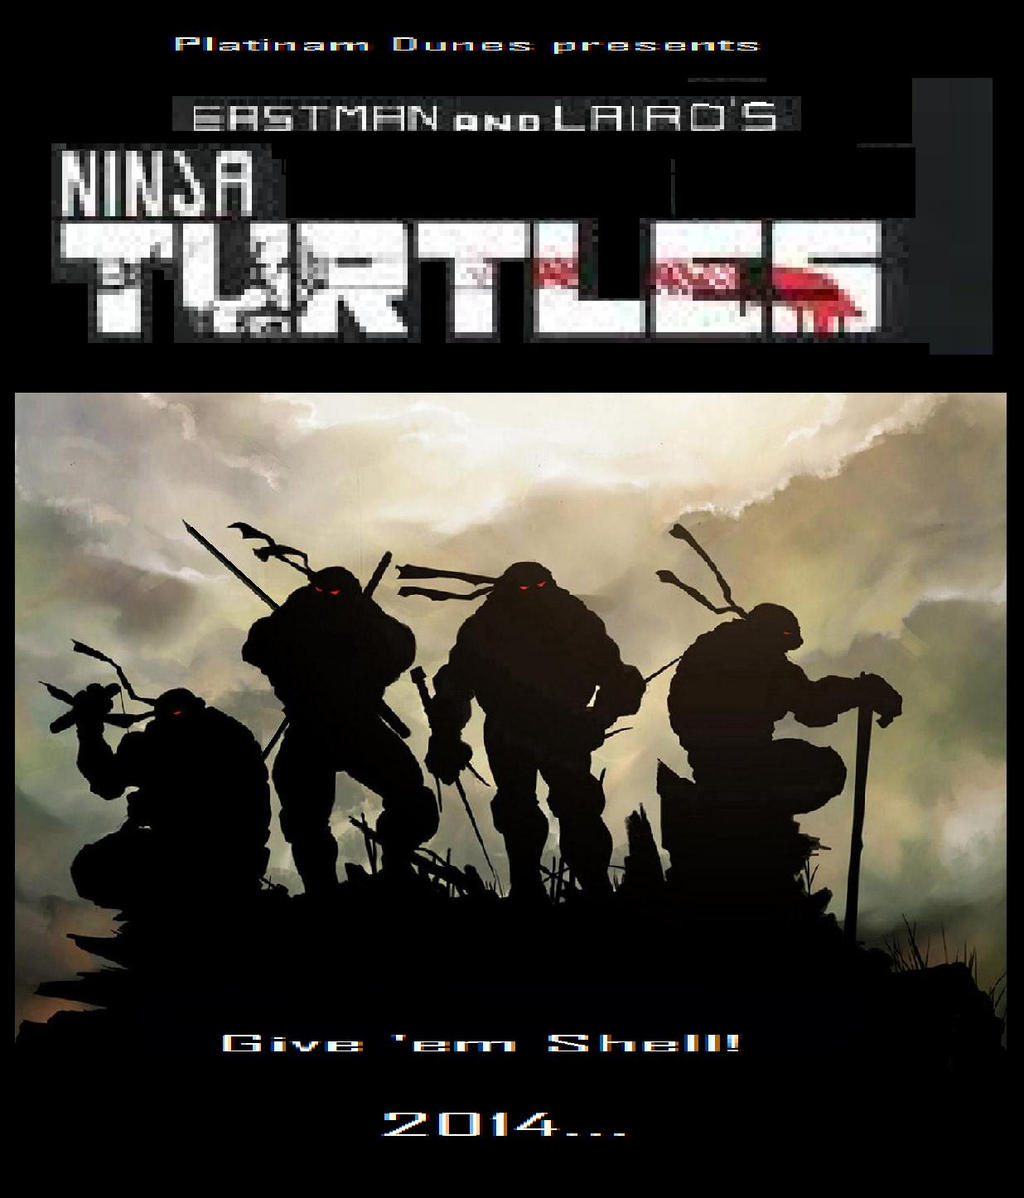 Ninja Turtles movie poster by NuvaPrime on DeviantArt